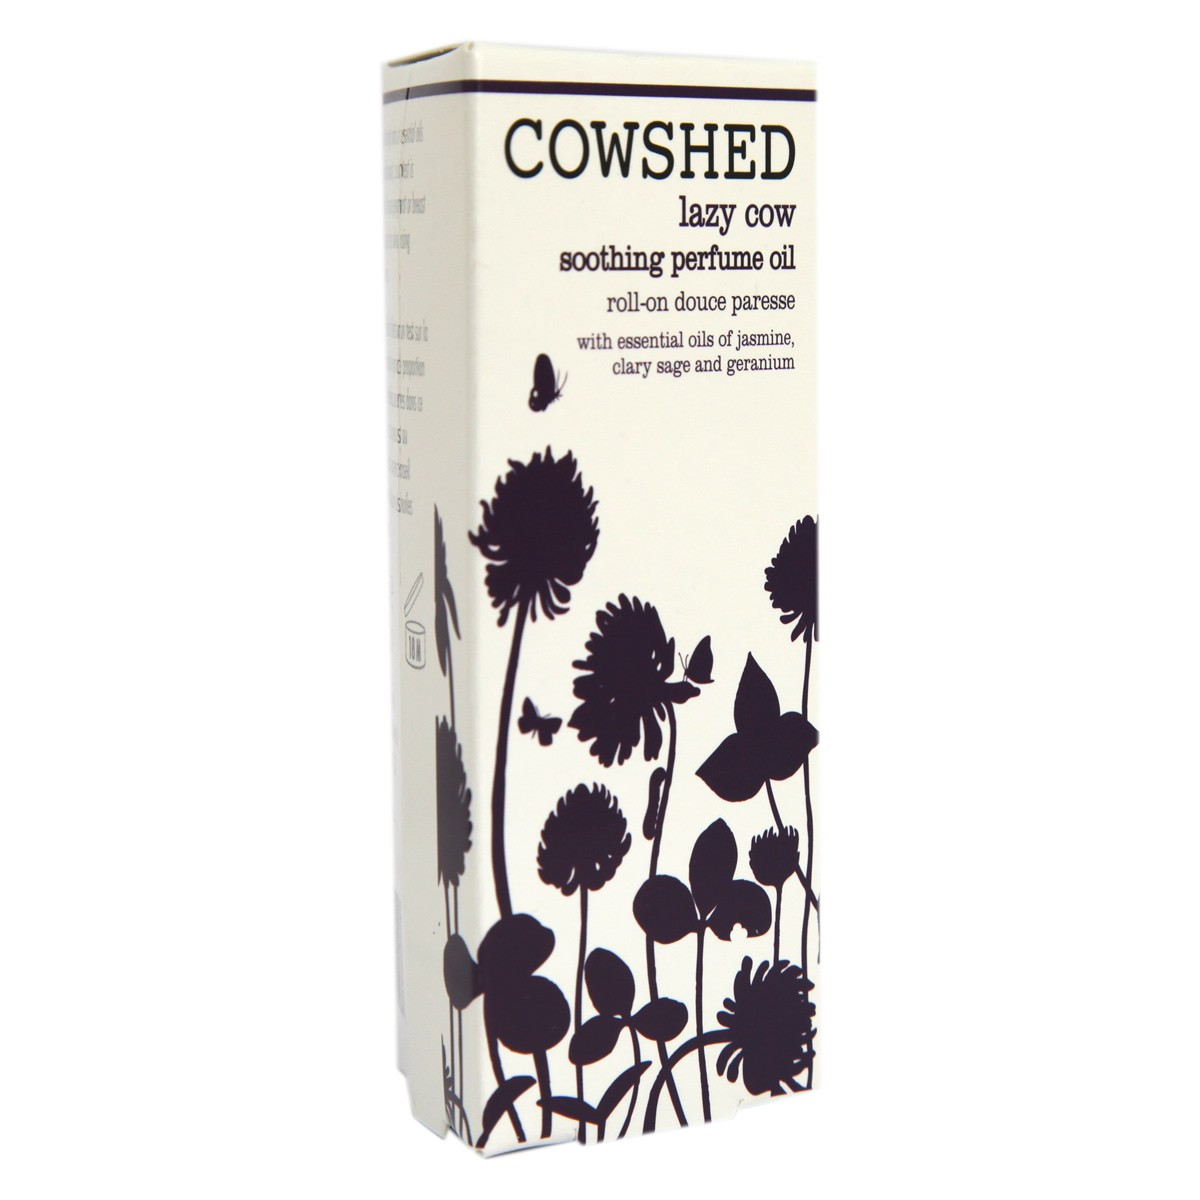 Cowshed Lazy Cow Soothing Roll On Perfume Oil